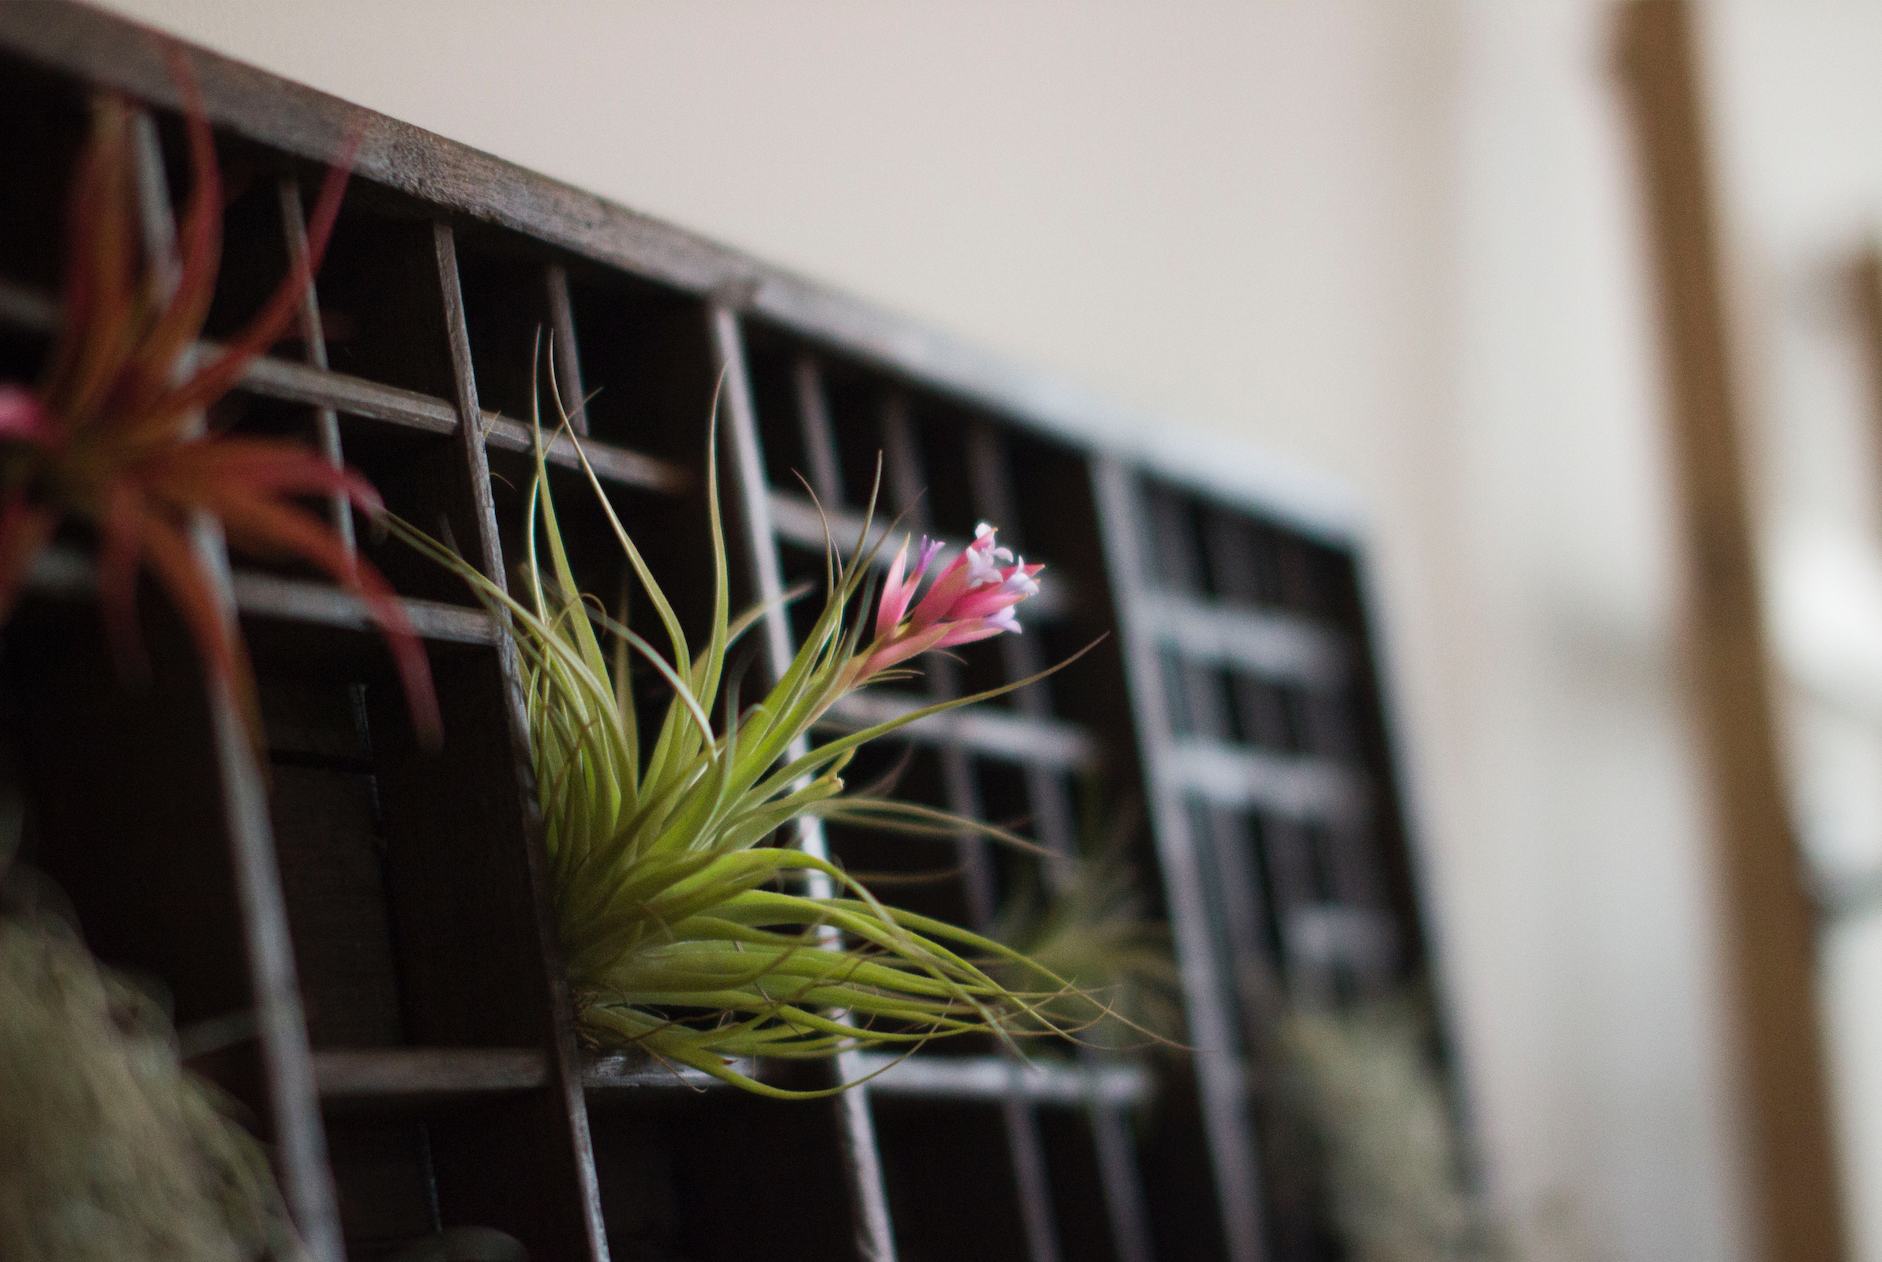 Air plants displayed in a Printers tray.